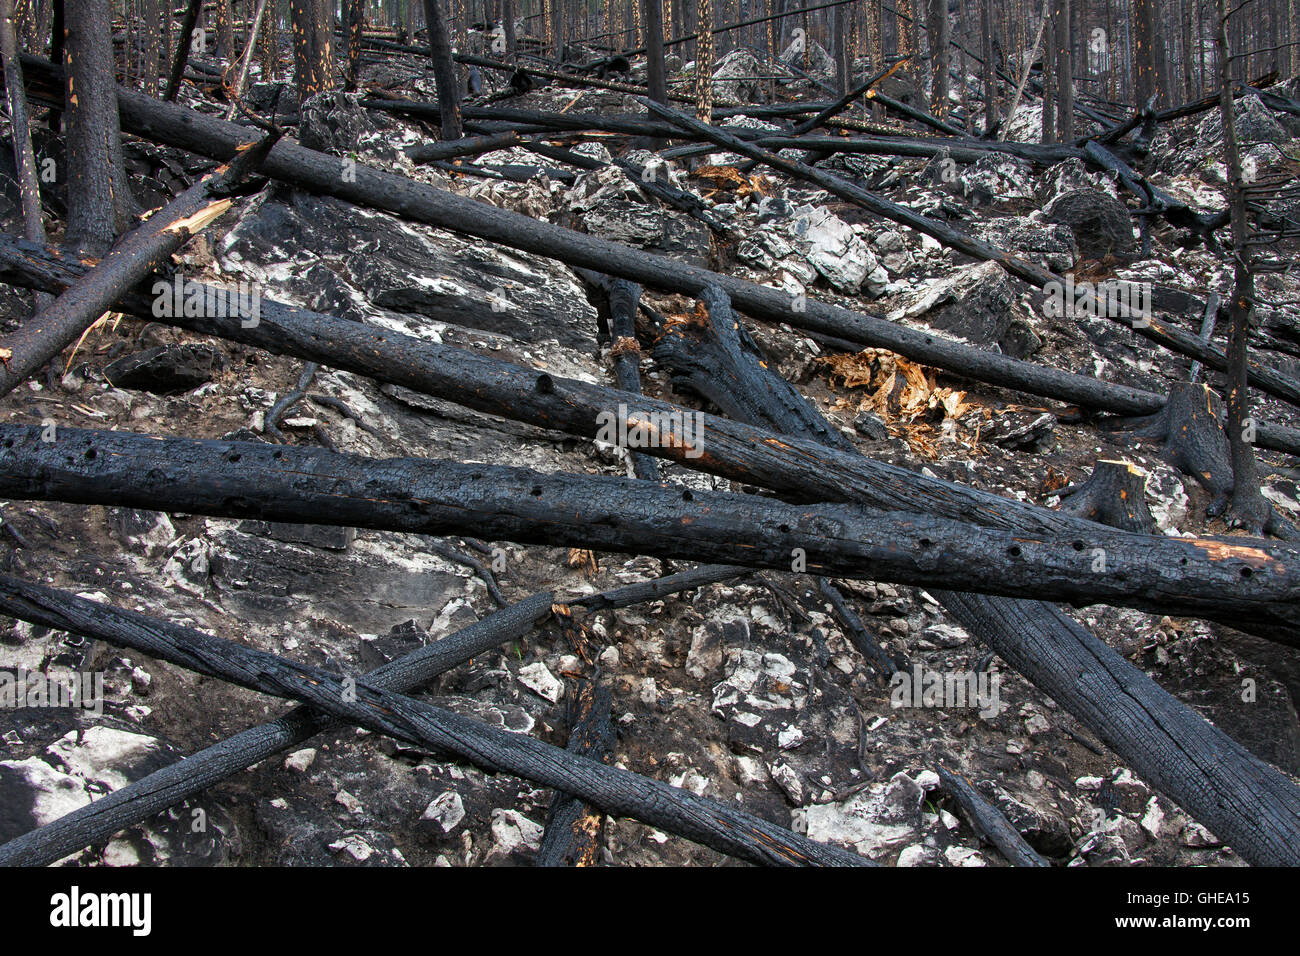 Charred tree trunks and scorched earth burned by forest fire, Jasper National Park, Alberta, Canada - Stock Image